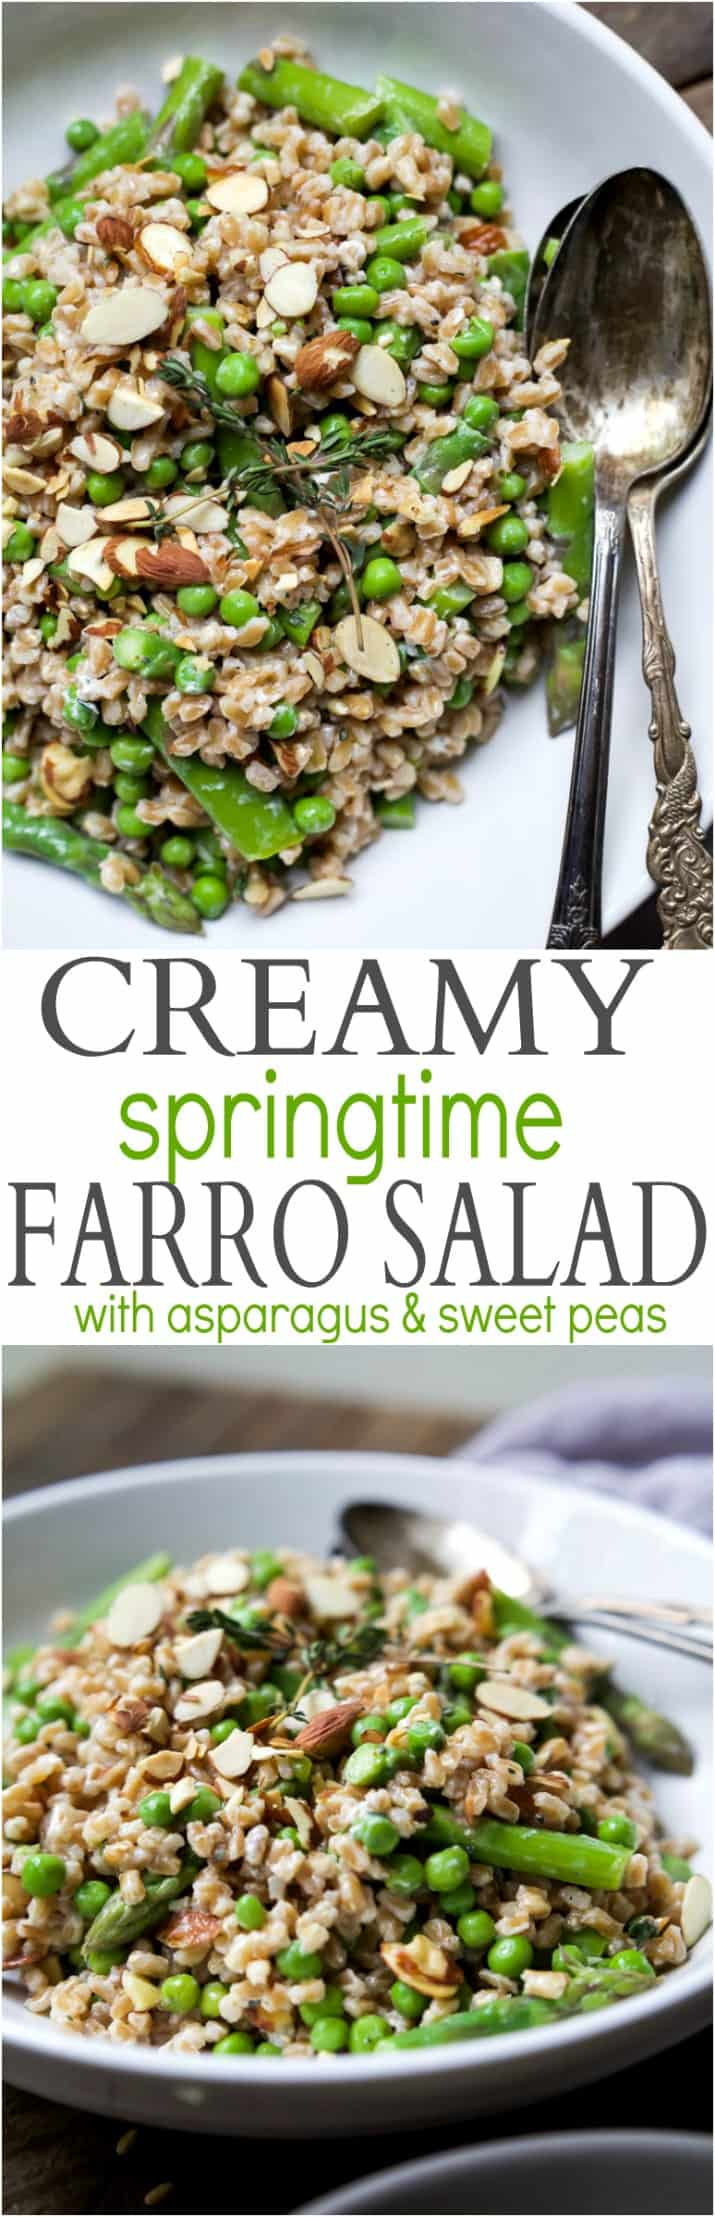 Creamy Springtime Farro Salad for the win! The perfect side dish filled with sweet peas, asparagus, fresh herbs and goat cheese! I guarantee you'll be addicted after the first bite! | joyfulhealthyeats.com